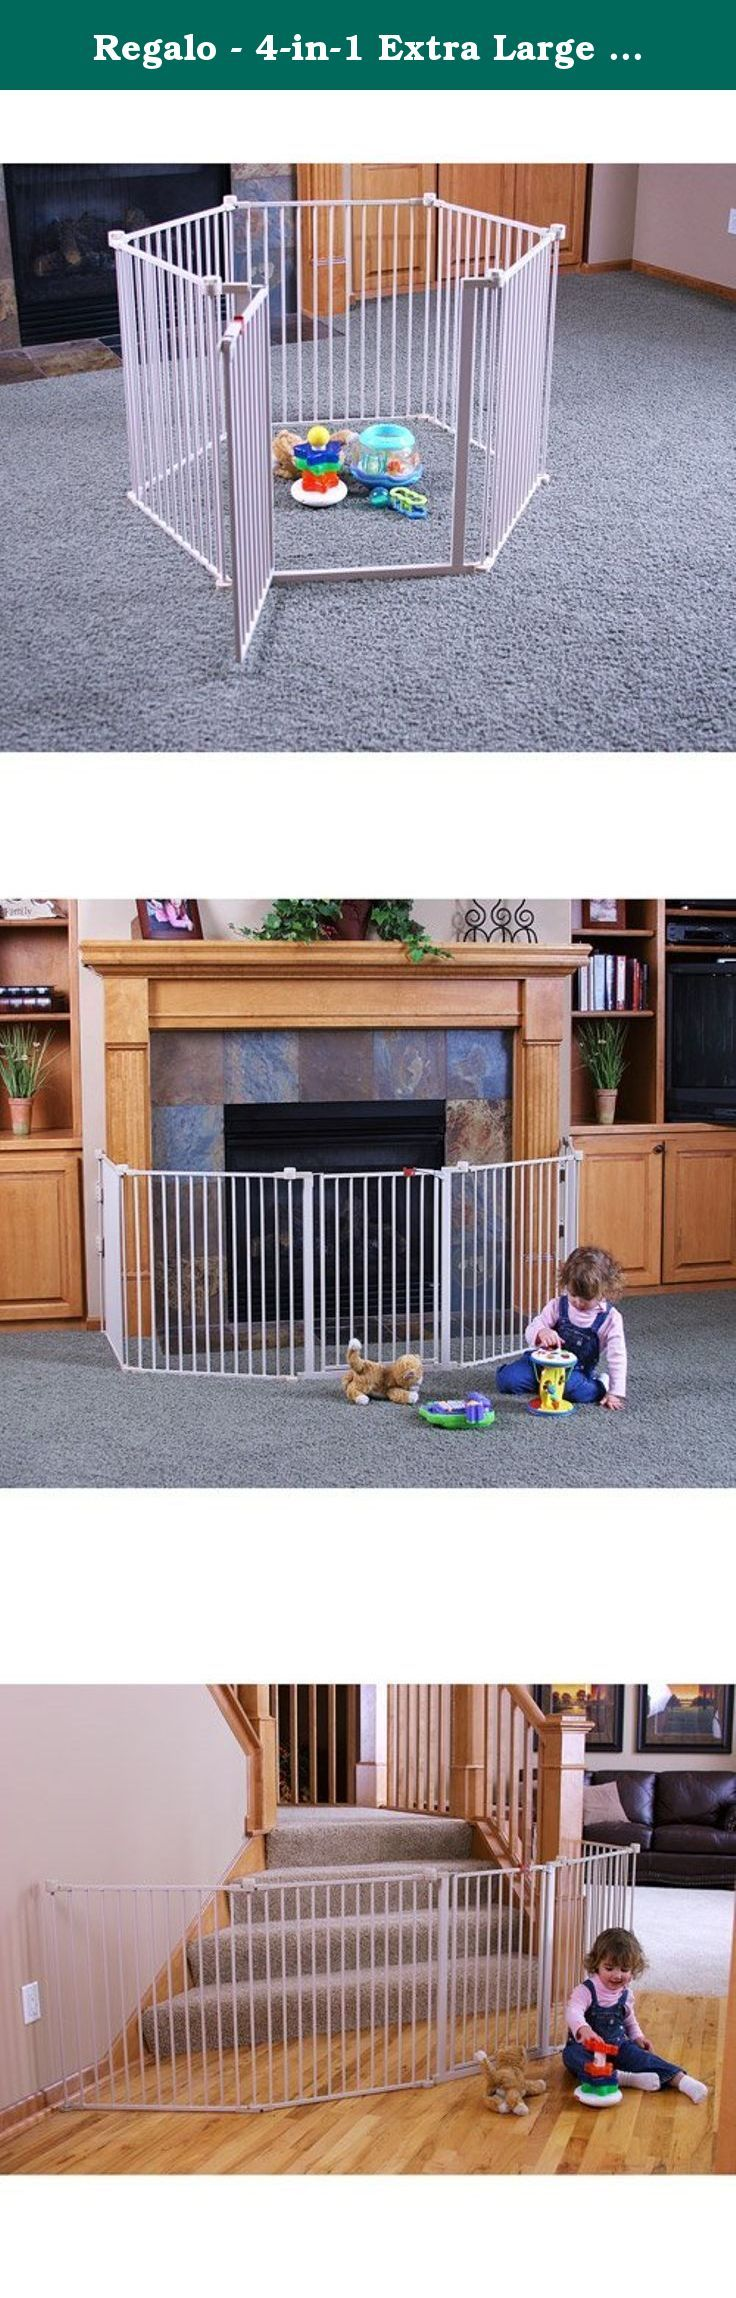 1000 Ideas About Fireplace Guard On Pinterest Baby Proof Fireplace Baby Proofing Fireplace